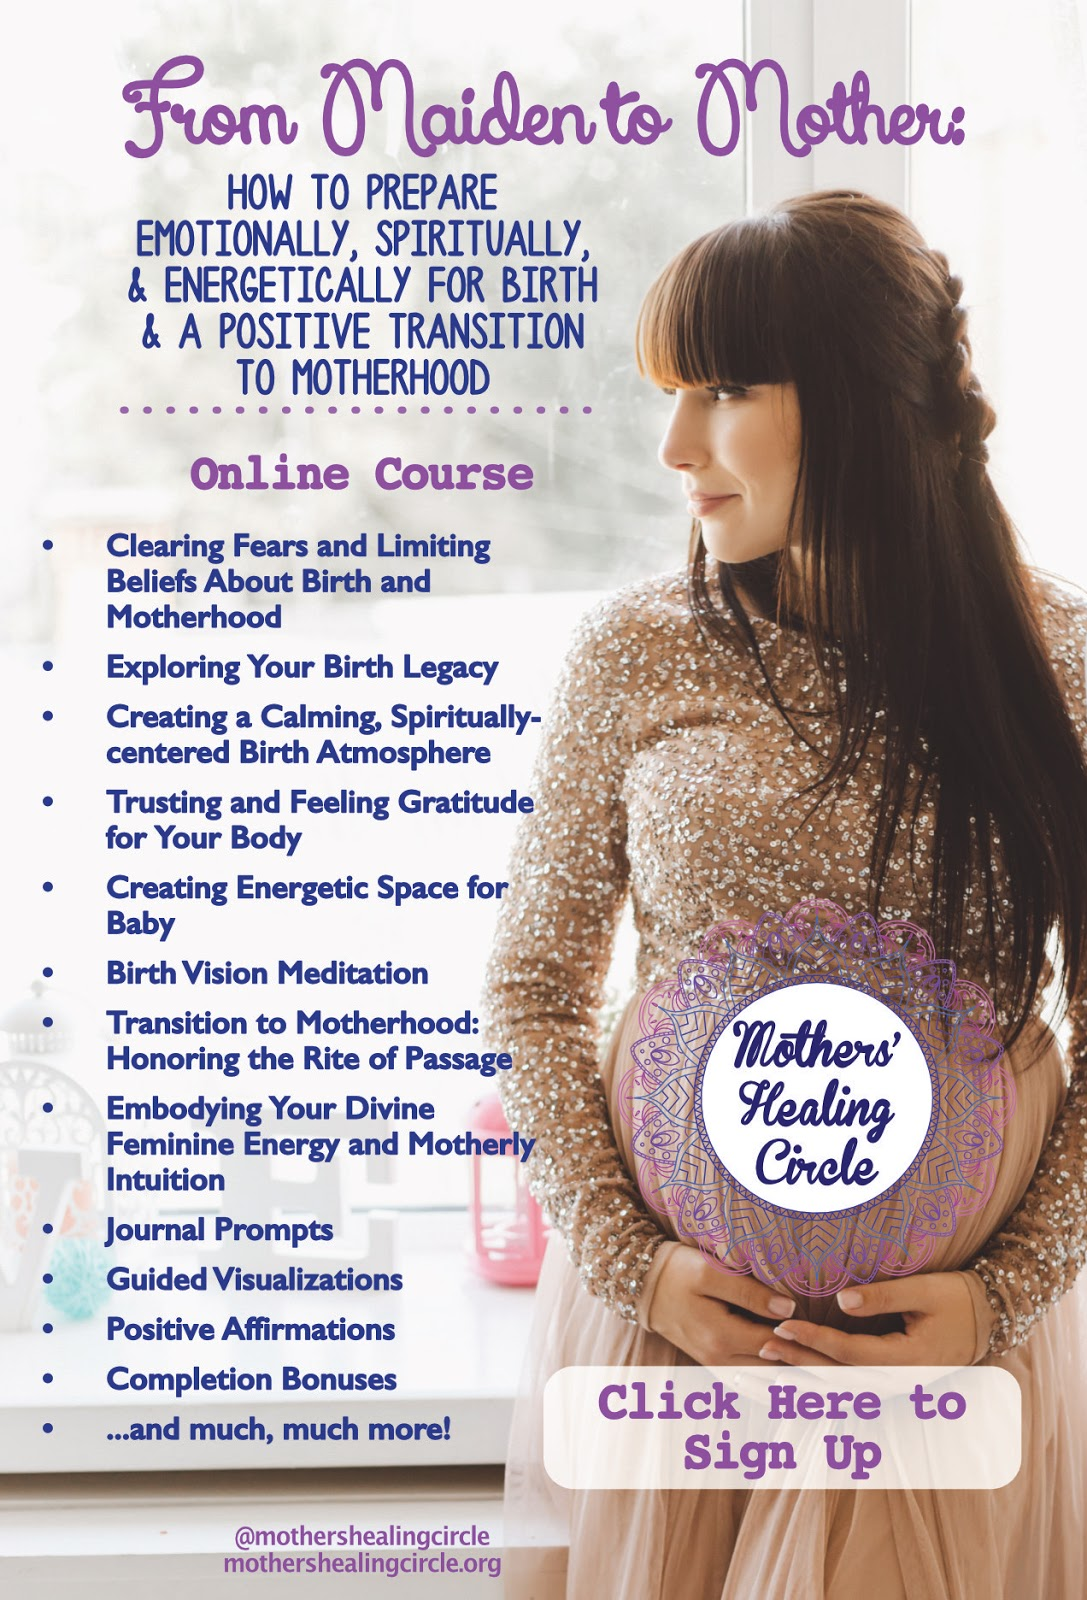 How to prepare emotionally, spiritually, and energetically for birth and a positive transition to motherhood